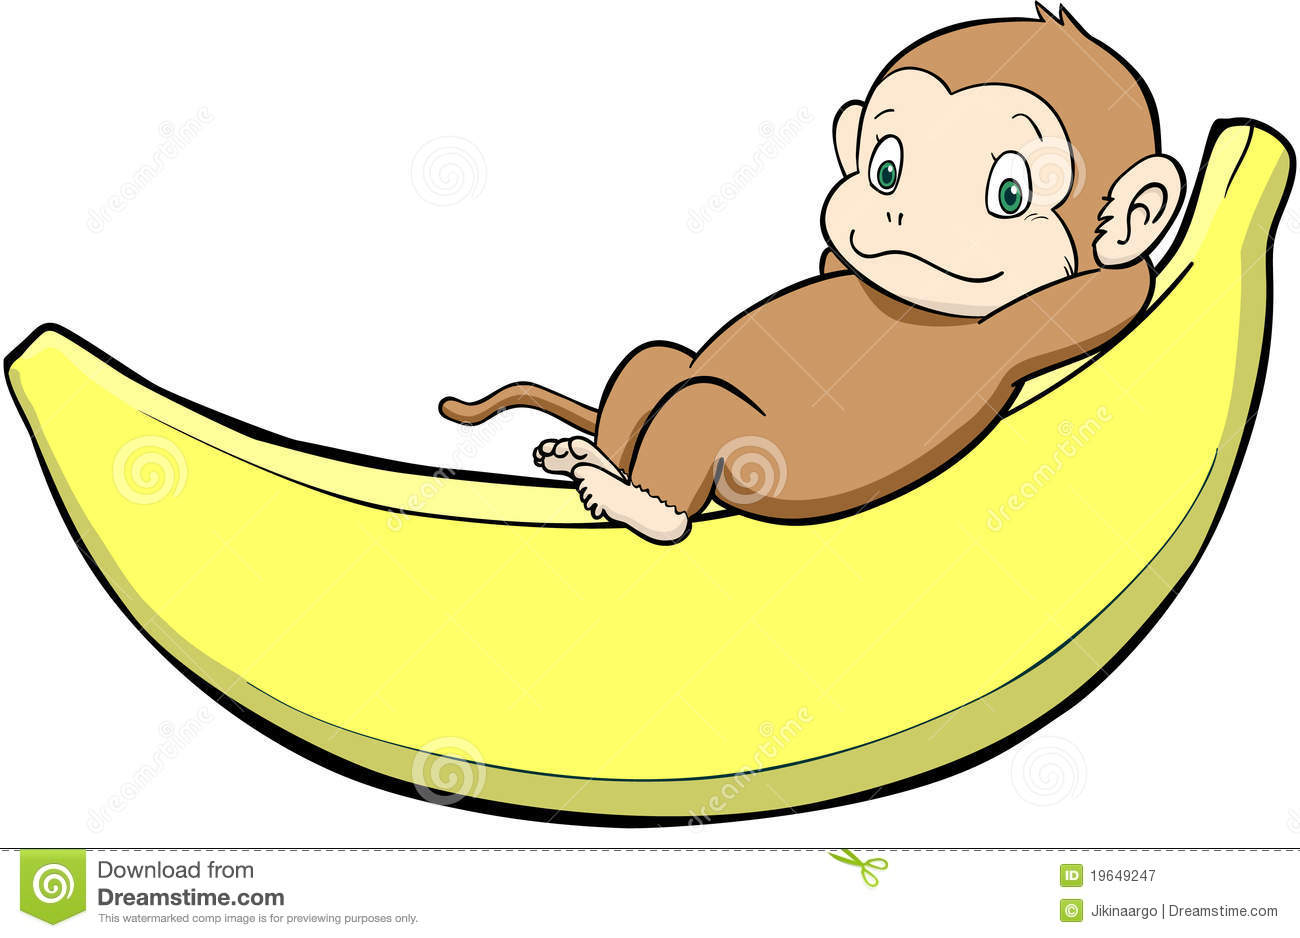 Monkey Banana Stock Photos, Images, & Pictures - 3,756 Images